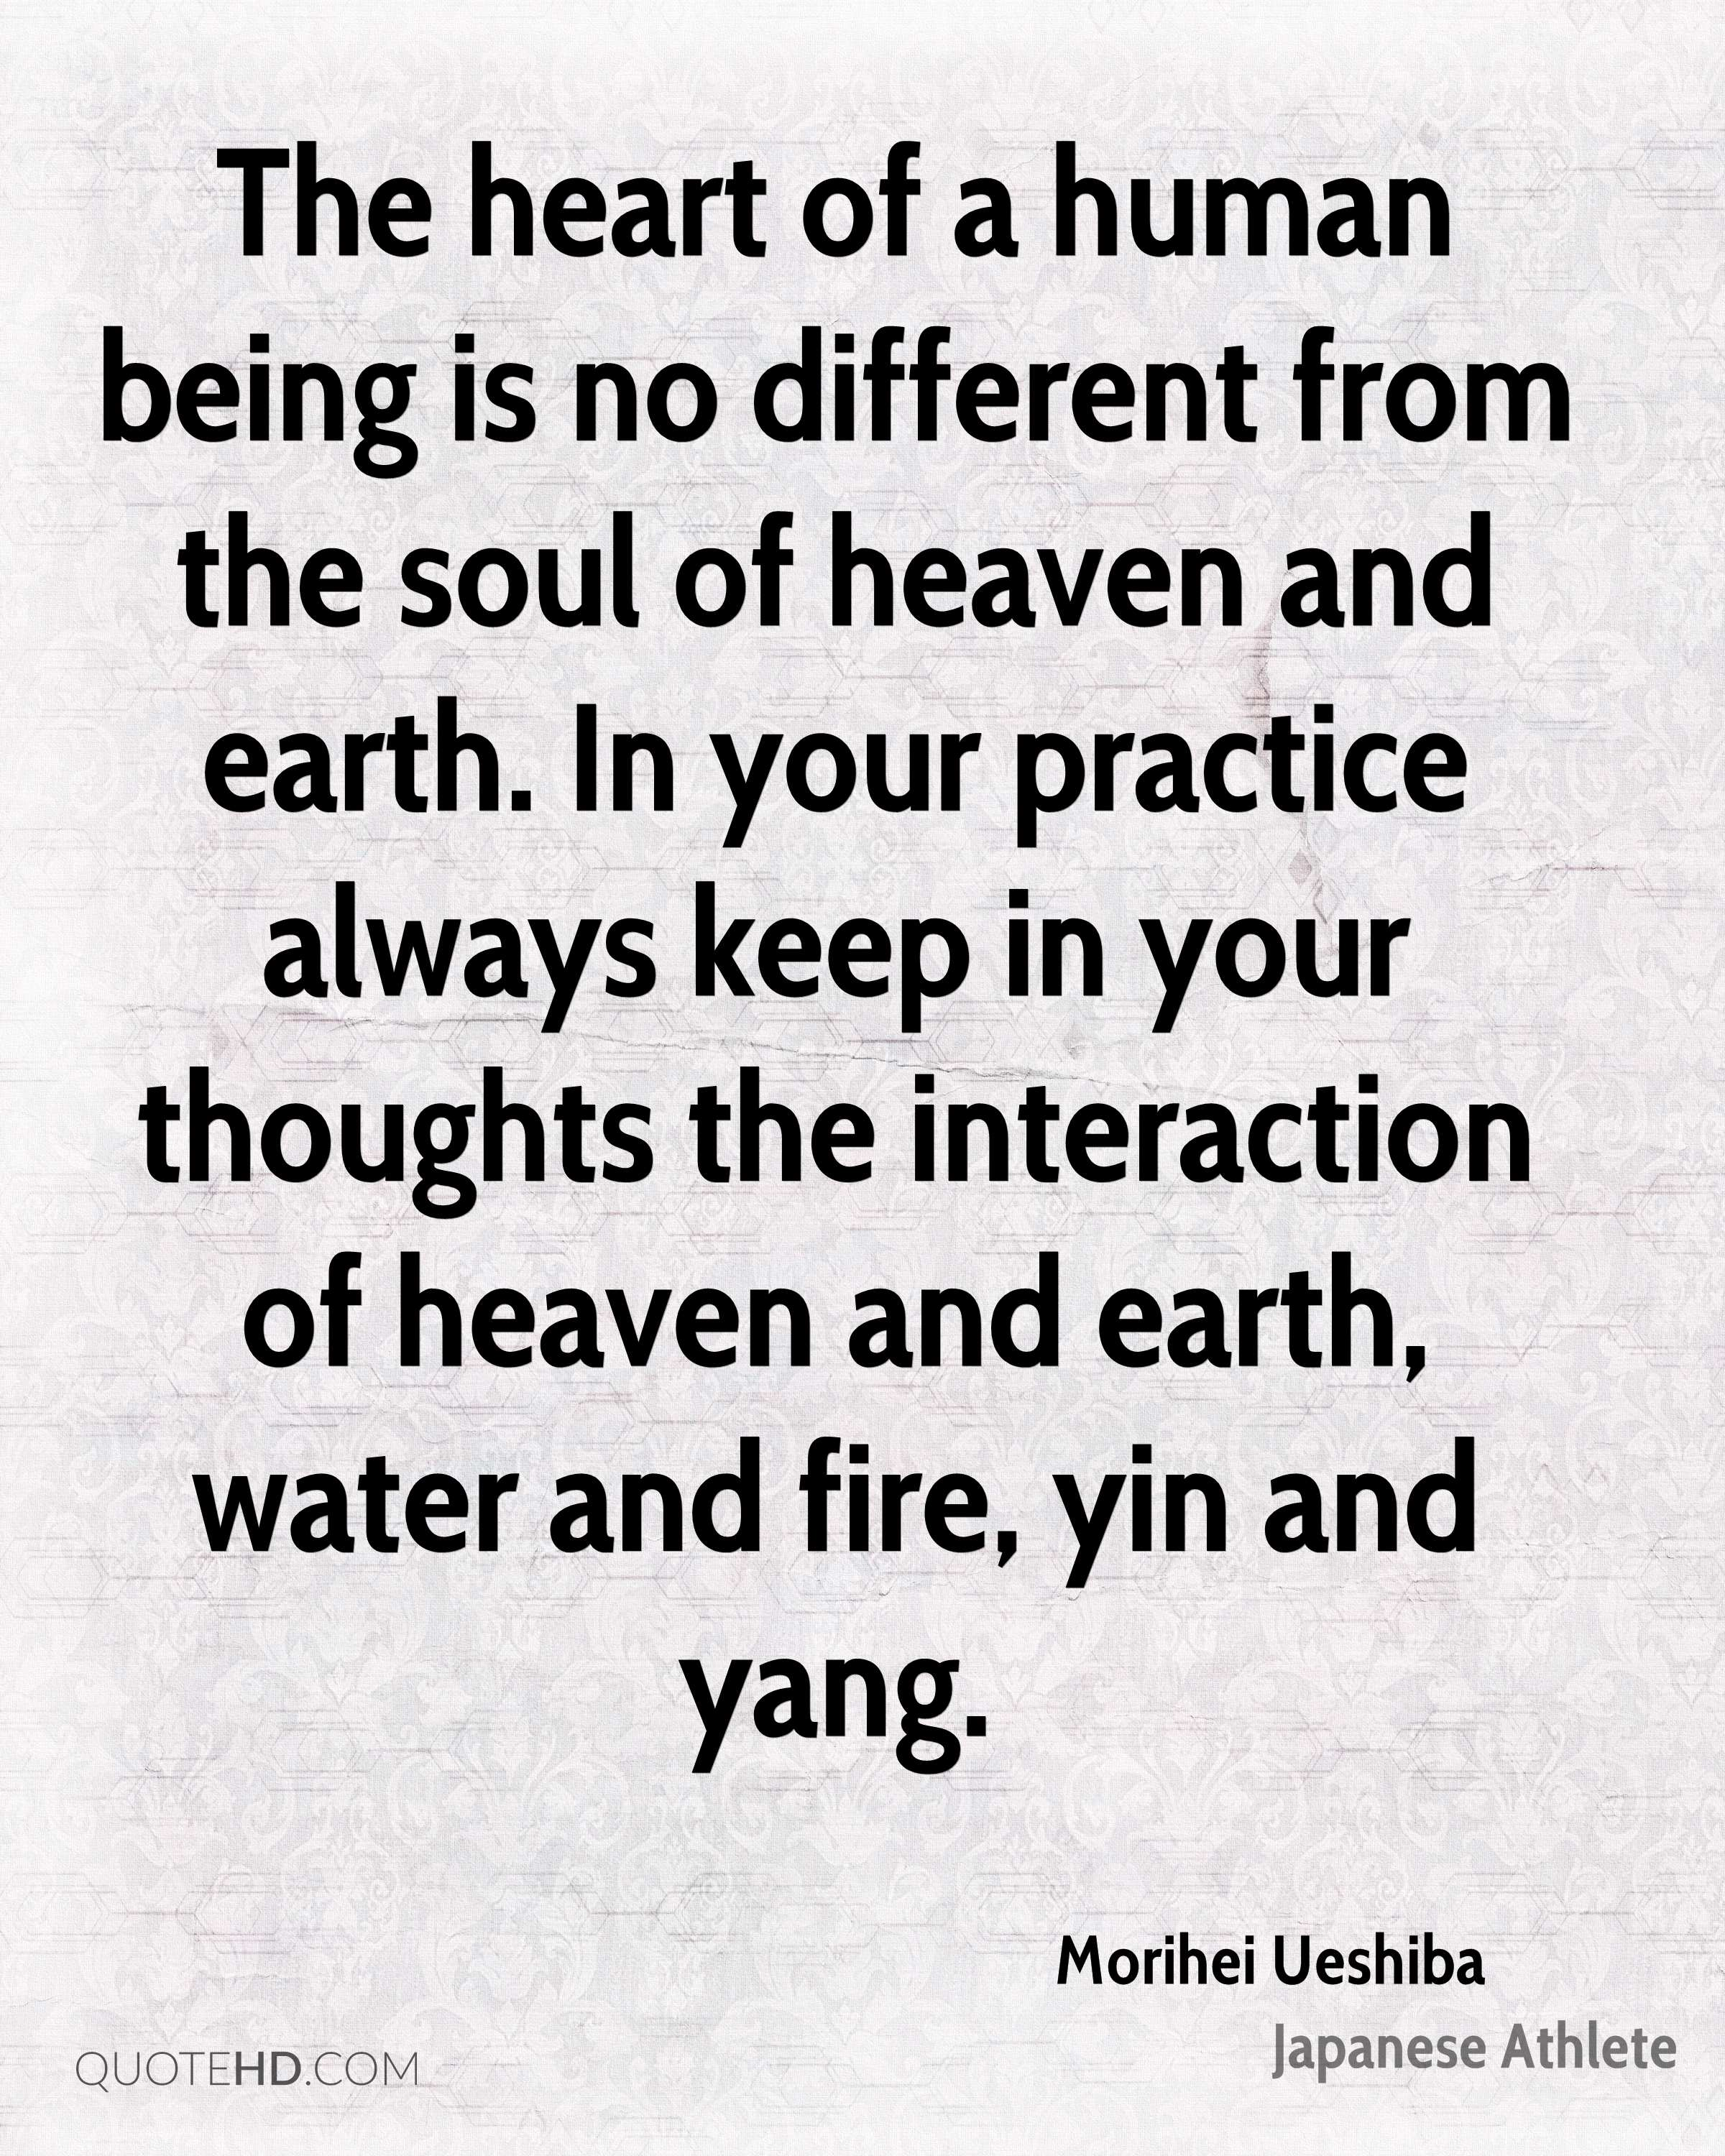 The heart of a human being is no different from the soul of heaven and earth. In your practice always keep in your thoughts the interaction of heaven and earth, water and fire, yin and yang.